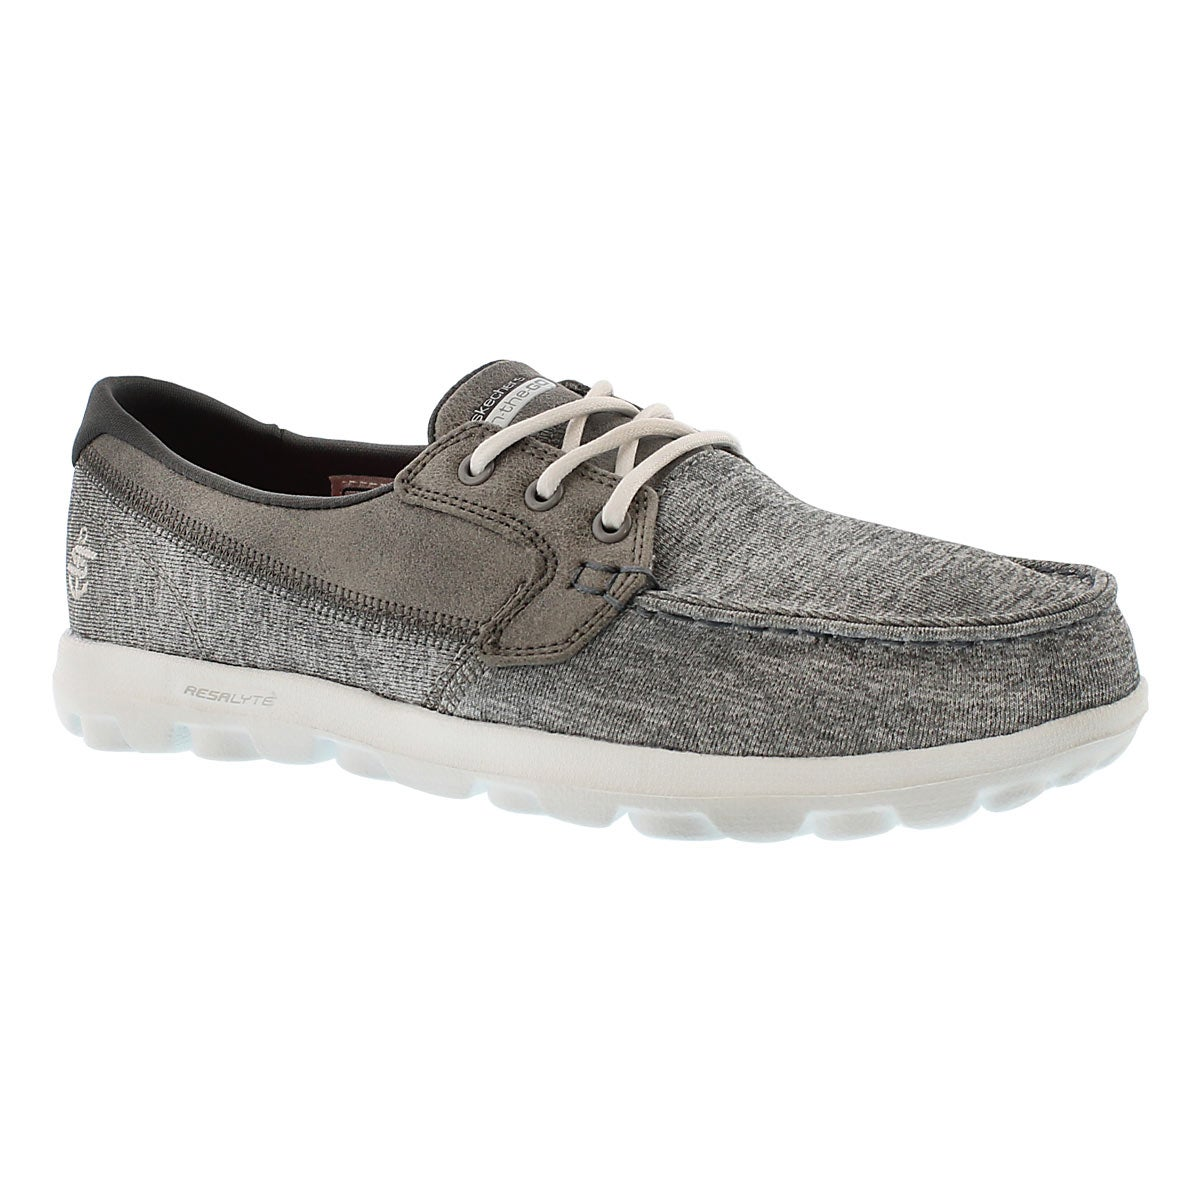 Lds Headsail charcoal 3 eye boat shoe